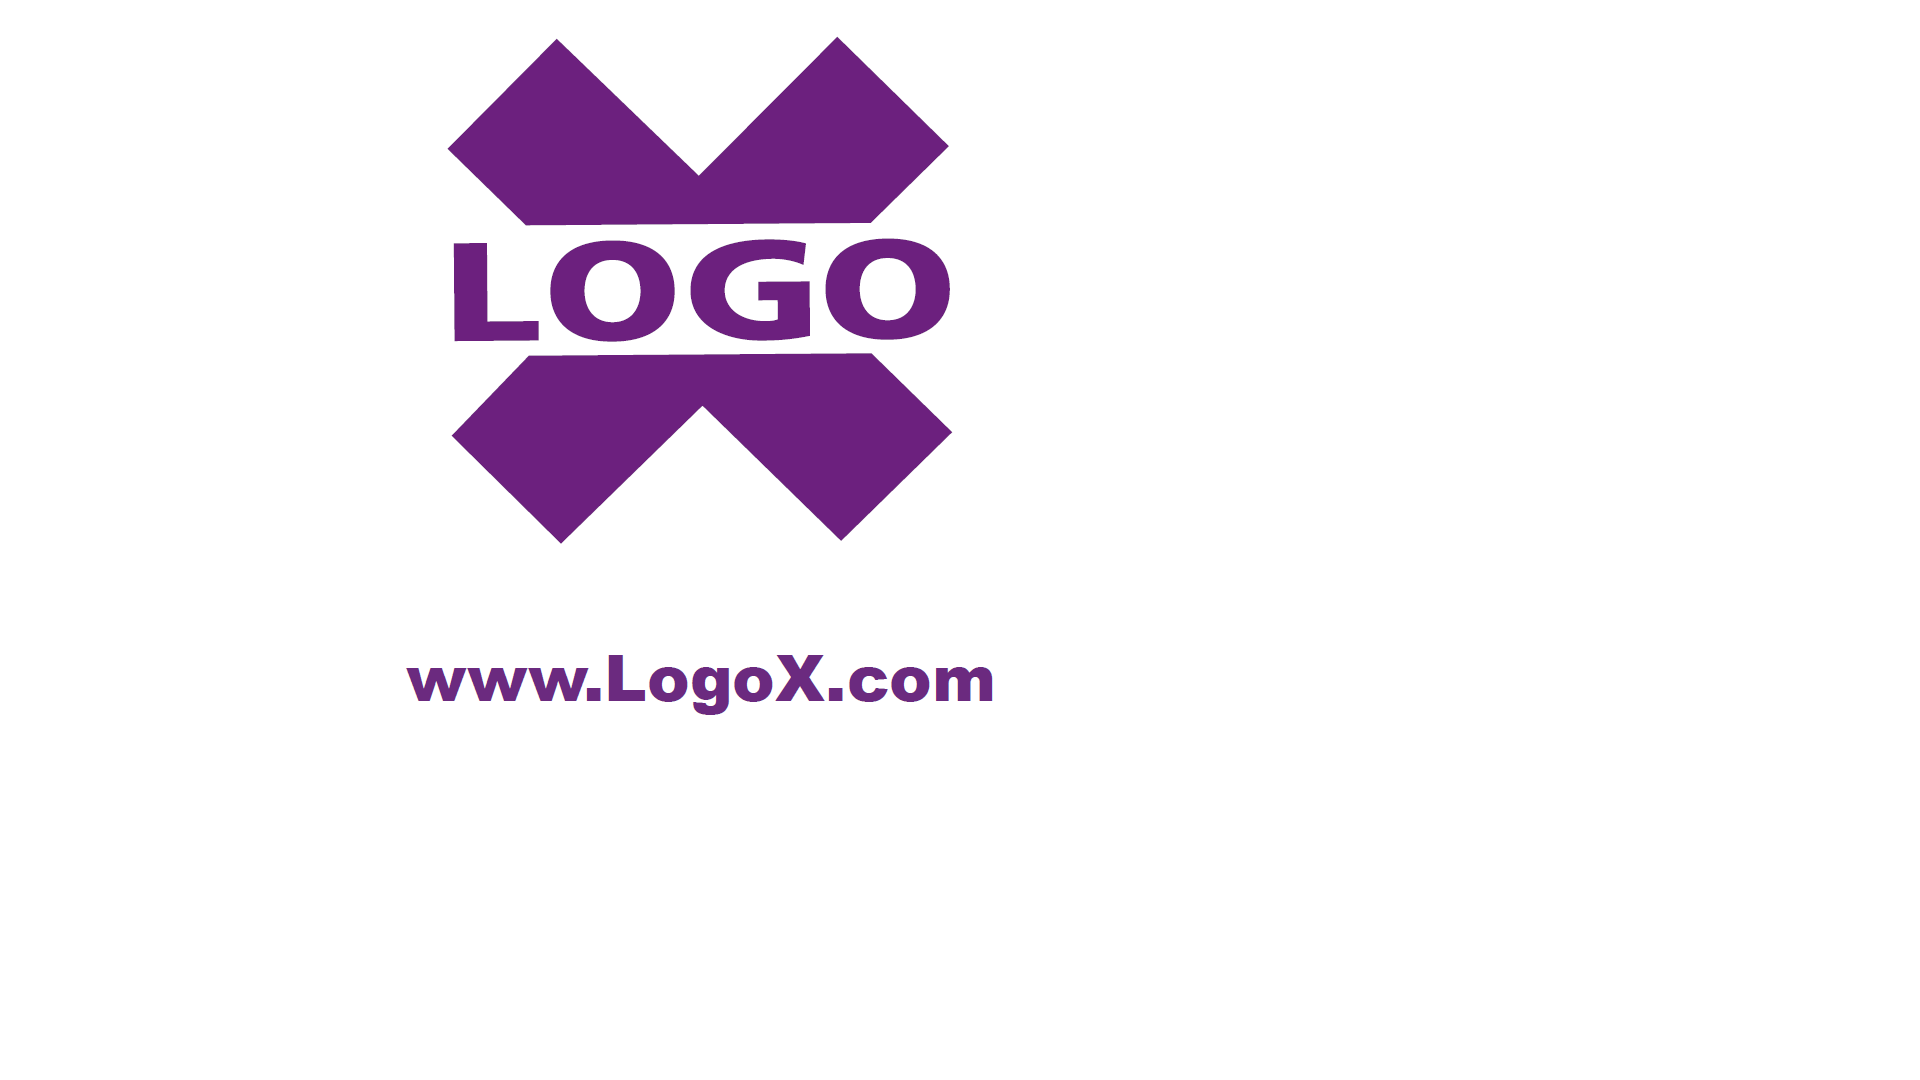 Read Logo X Inc Reviews